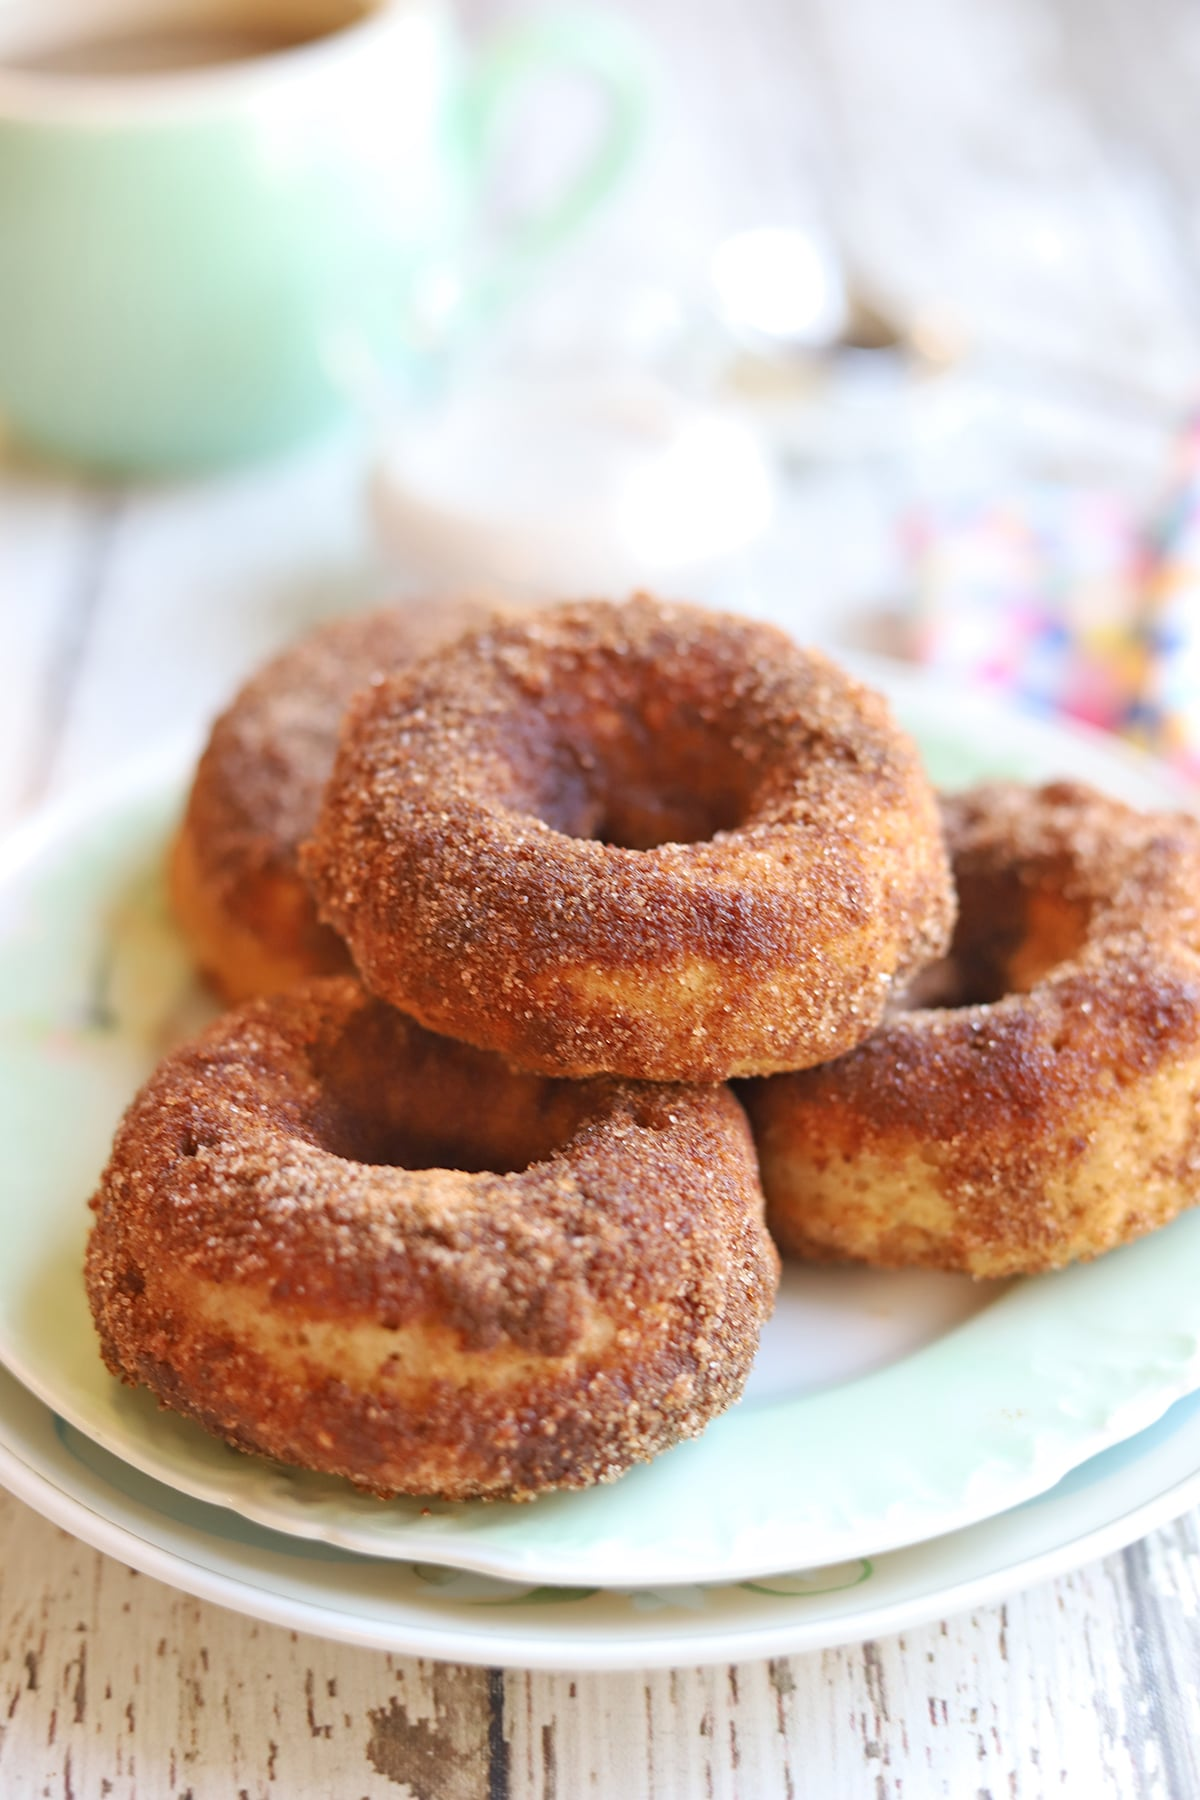 Plate of cinnamon donuts.